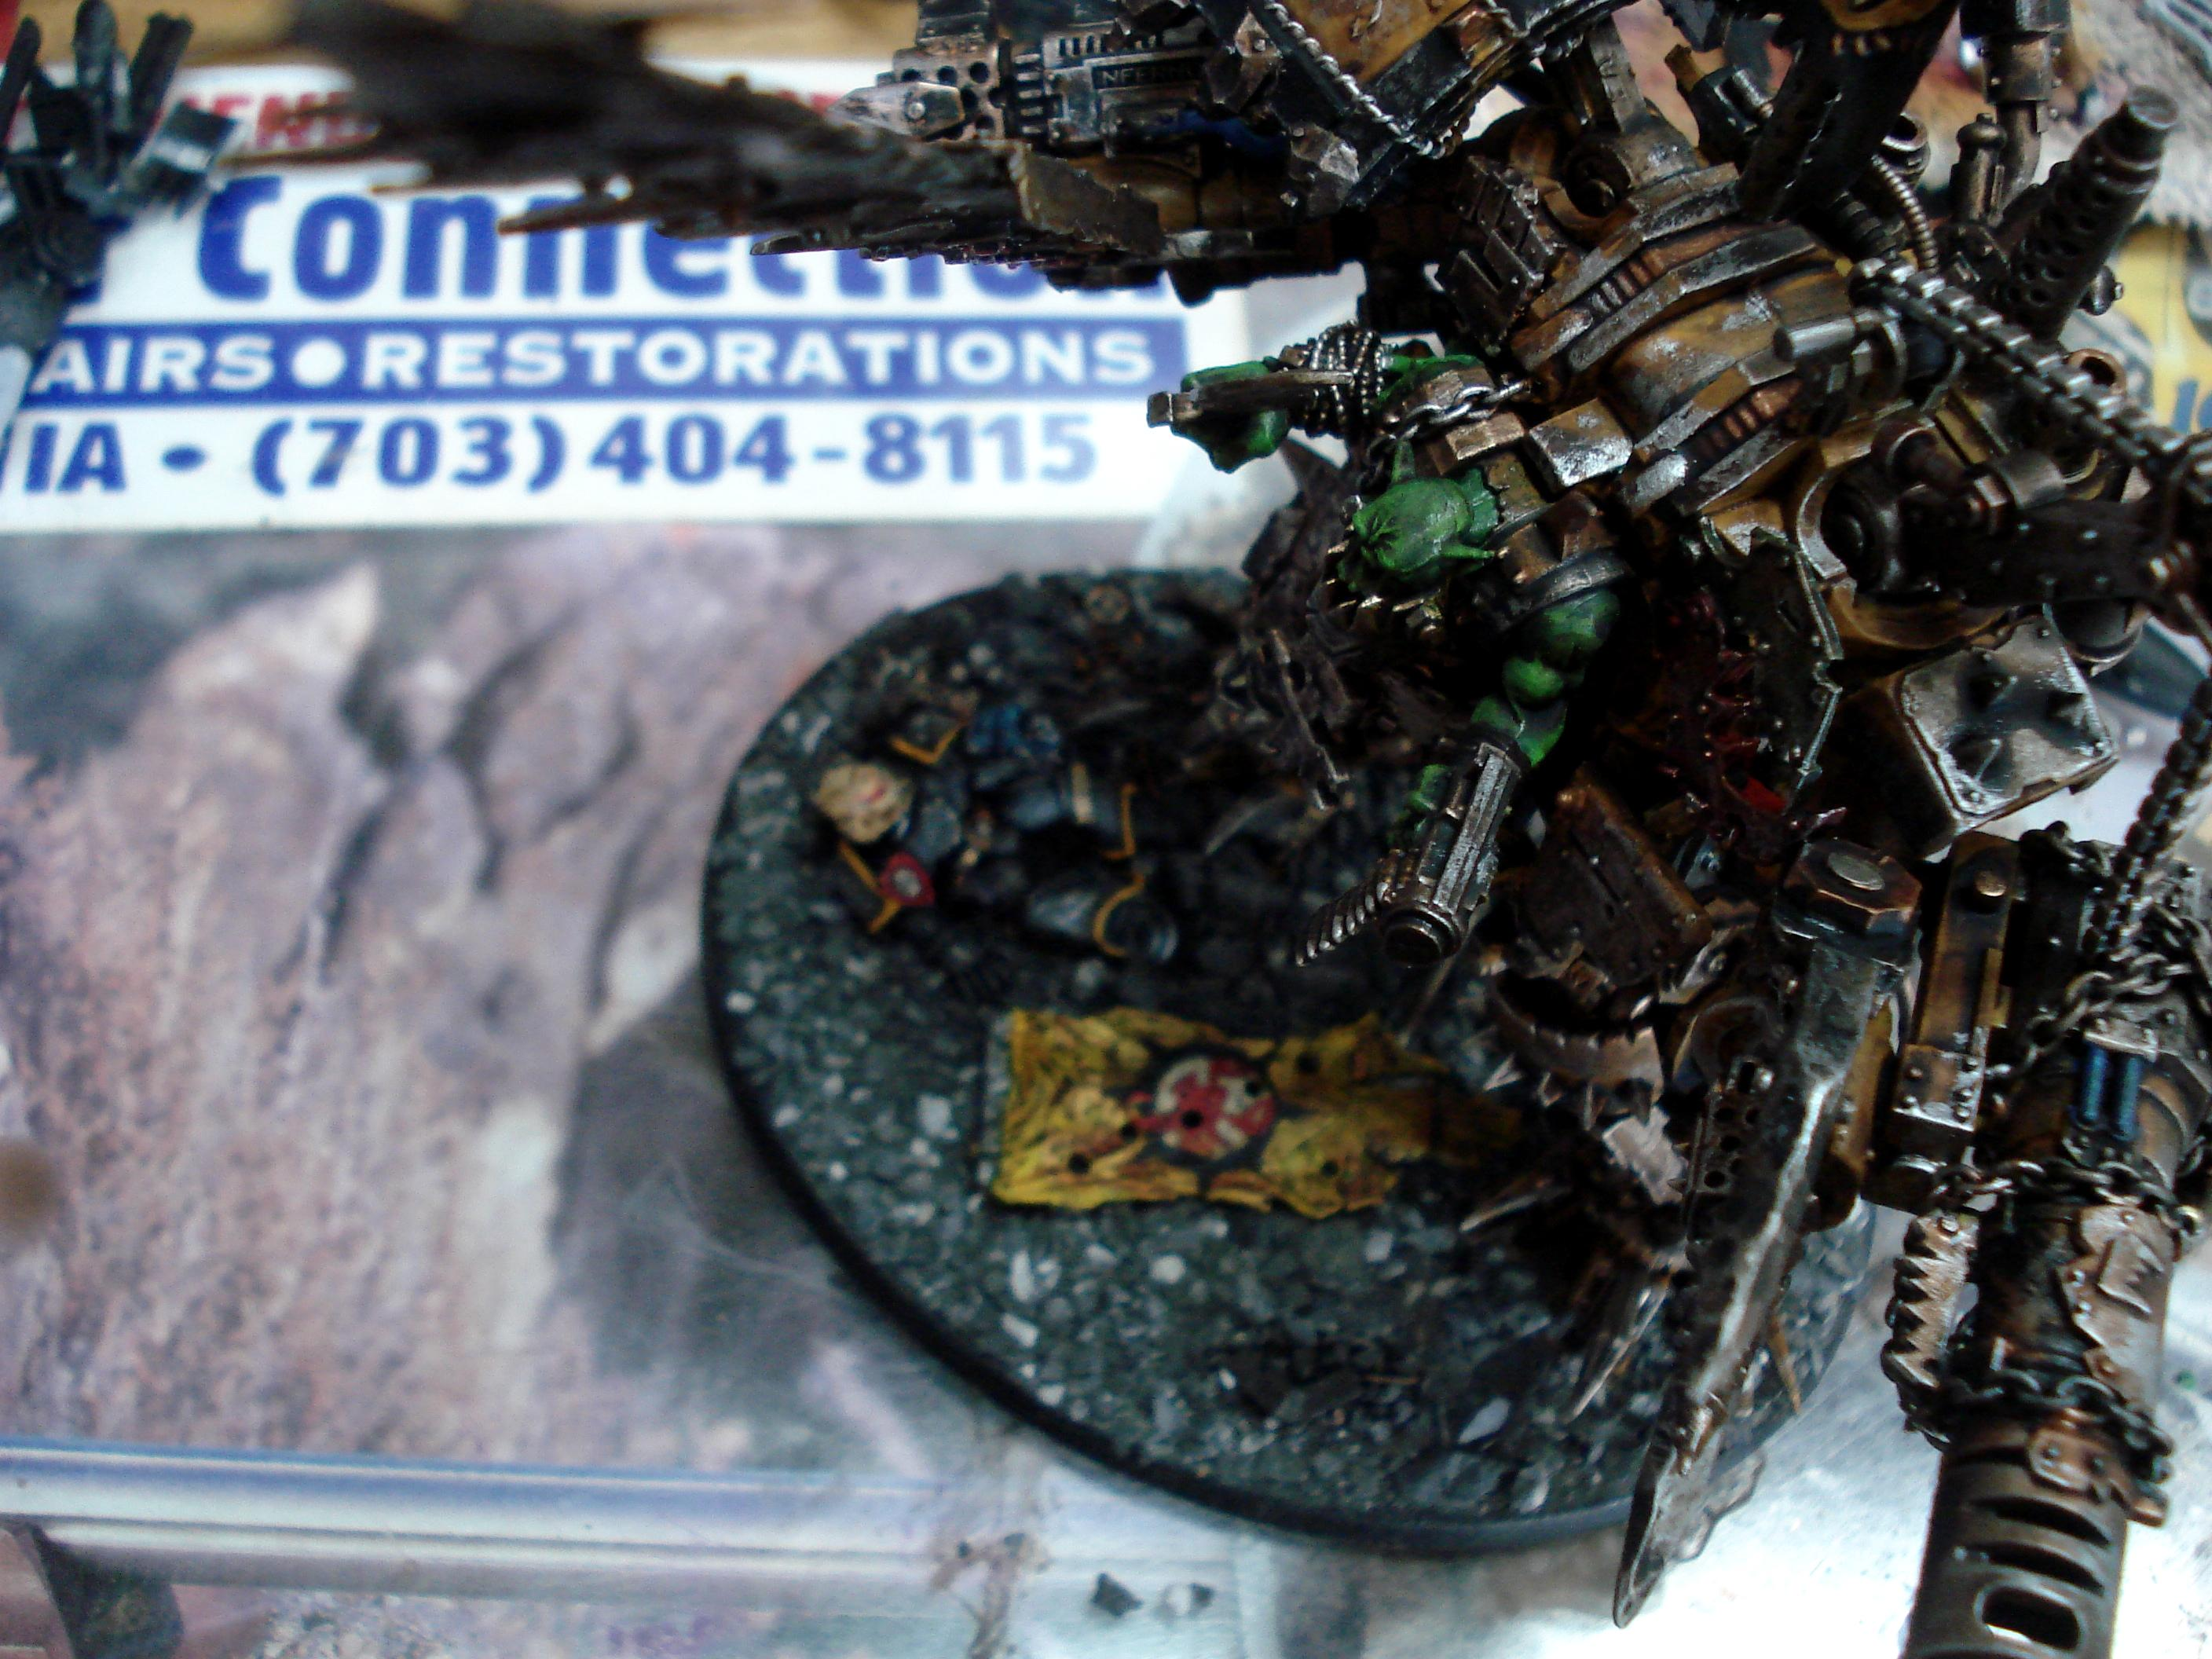 Bad, Claw, Comission, Custom, Deff, Dreadnought, Field, Force, Kustom, Moons, Orks, Scrap, Space, Space Marines, Truk